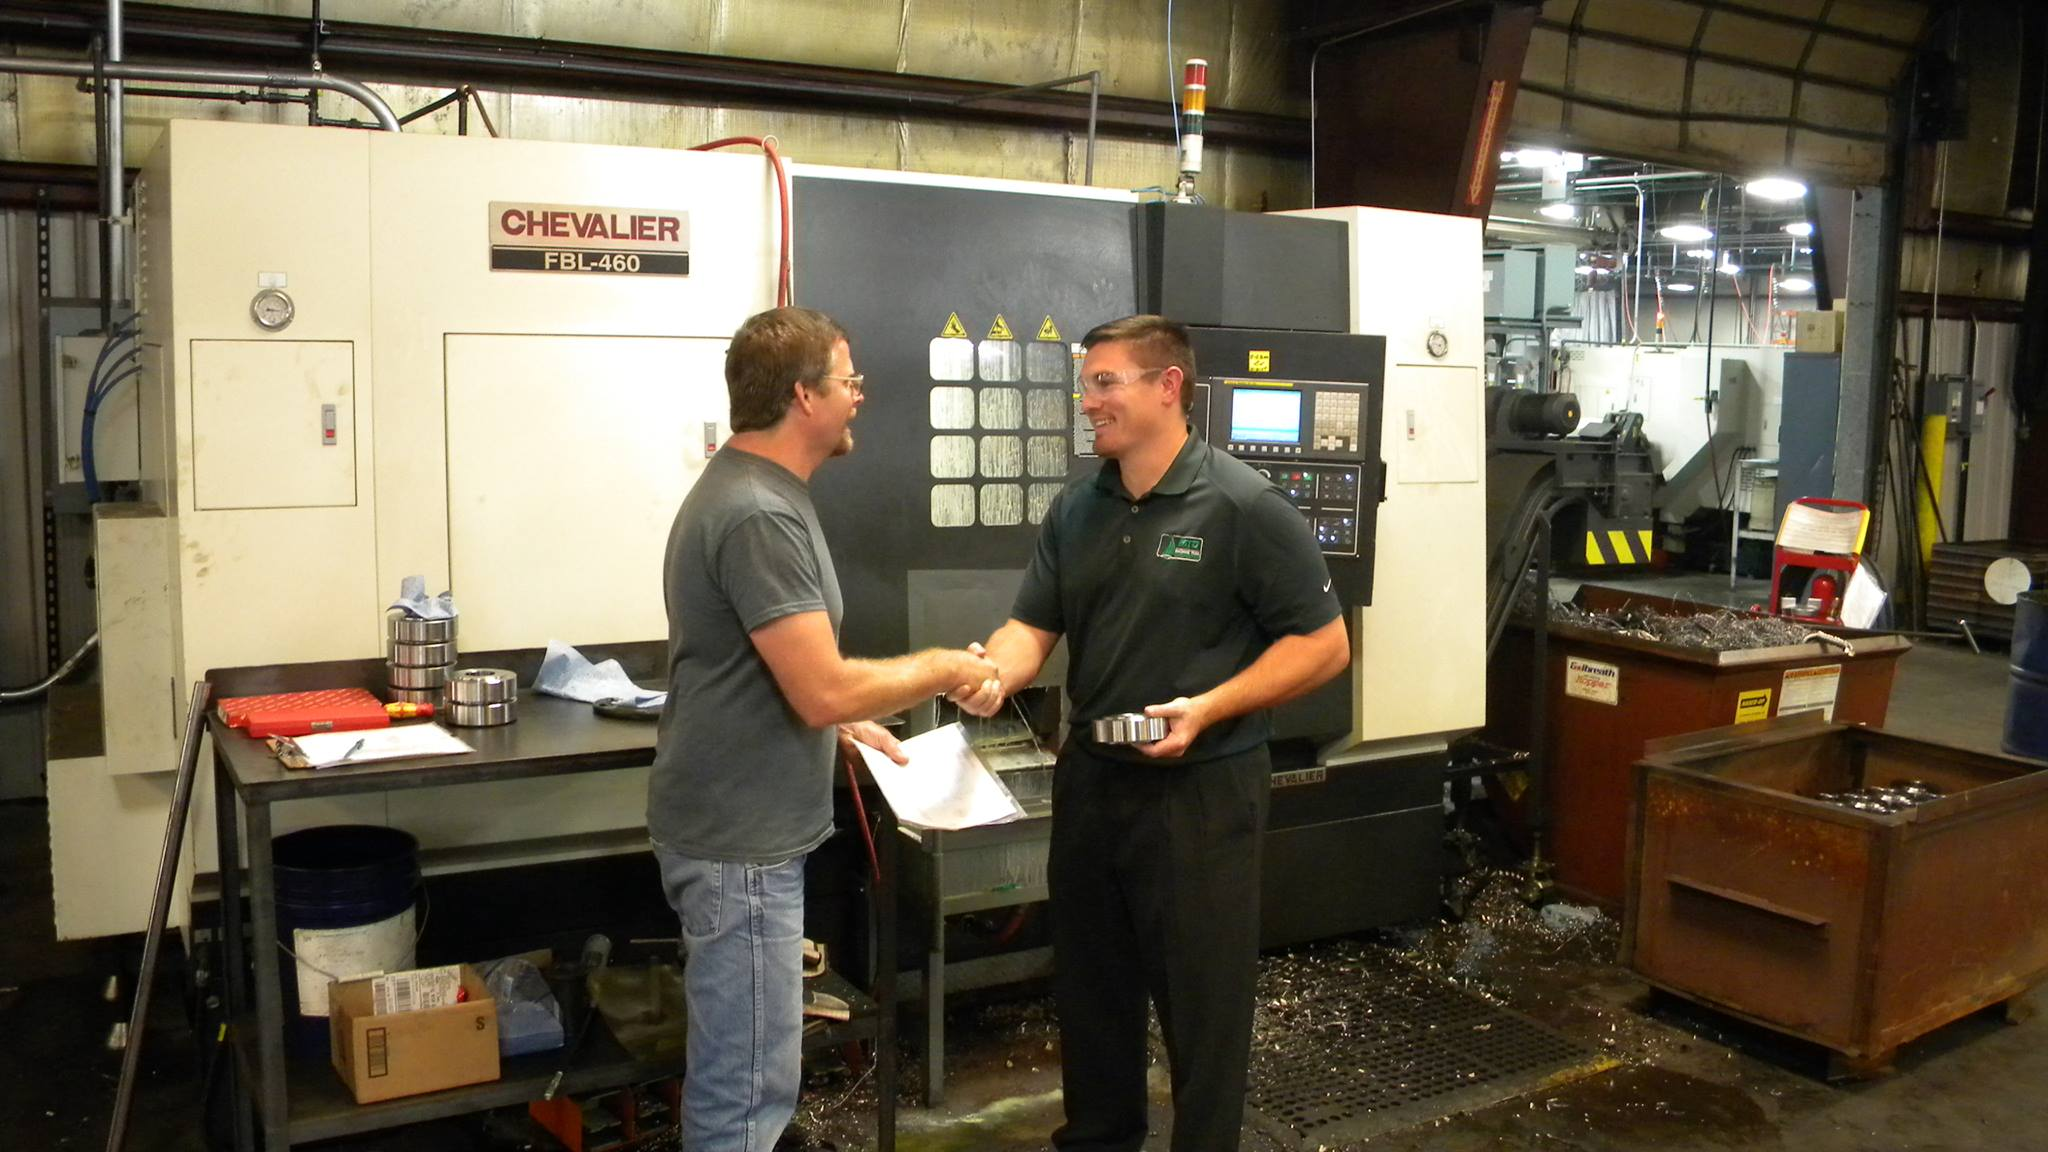 Machine Sales - With Machine Tool Diagnostics, you can purchase high quality machine tools and accessories that you can rely on, providing your business with the tools it needs to be as successful as possible.Our highly knowledgeable MTD Sales Team can help you determine the right machine for your shop. We provide an extensive variety of machines from the most trusted CNC/ Machine tool brands in the industry.